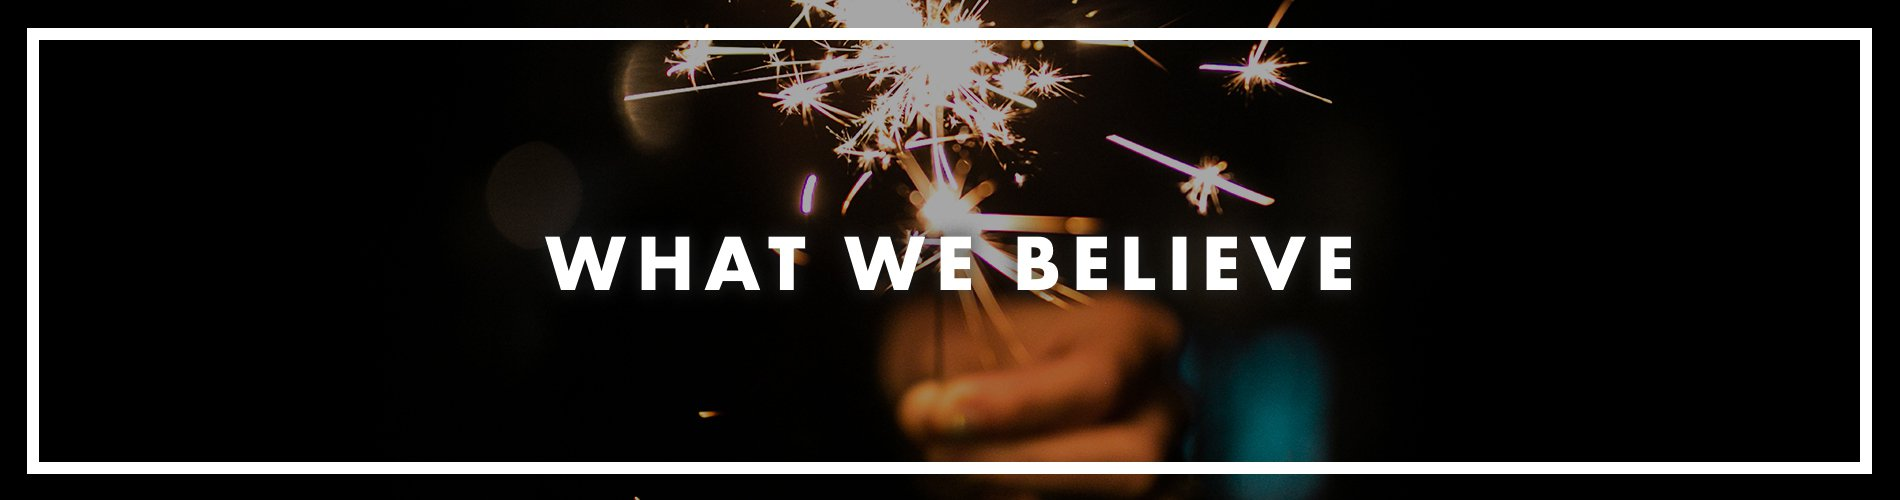 What We Believe banner